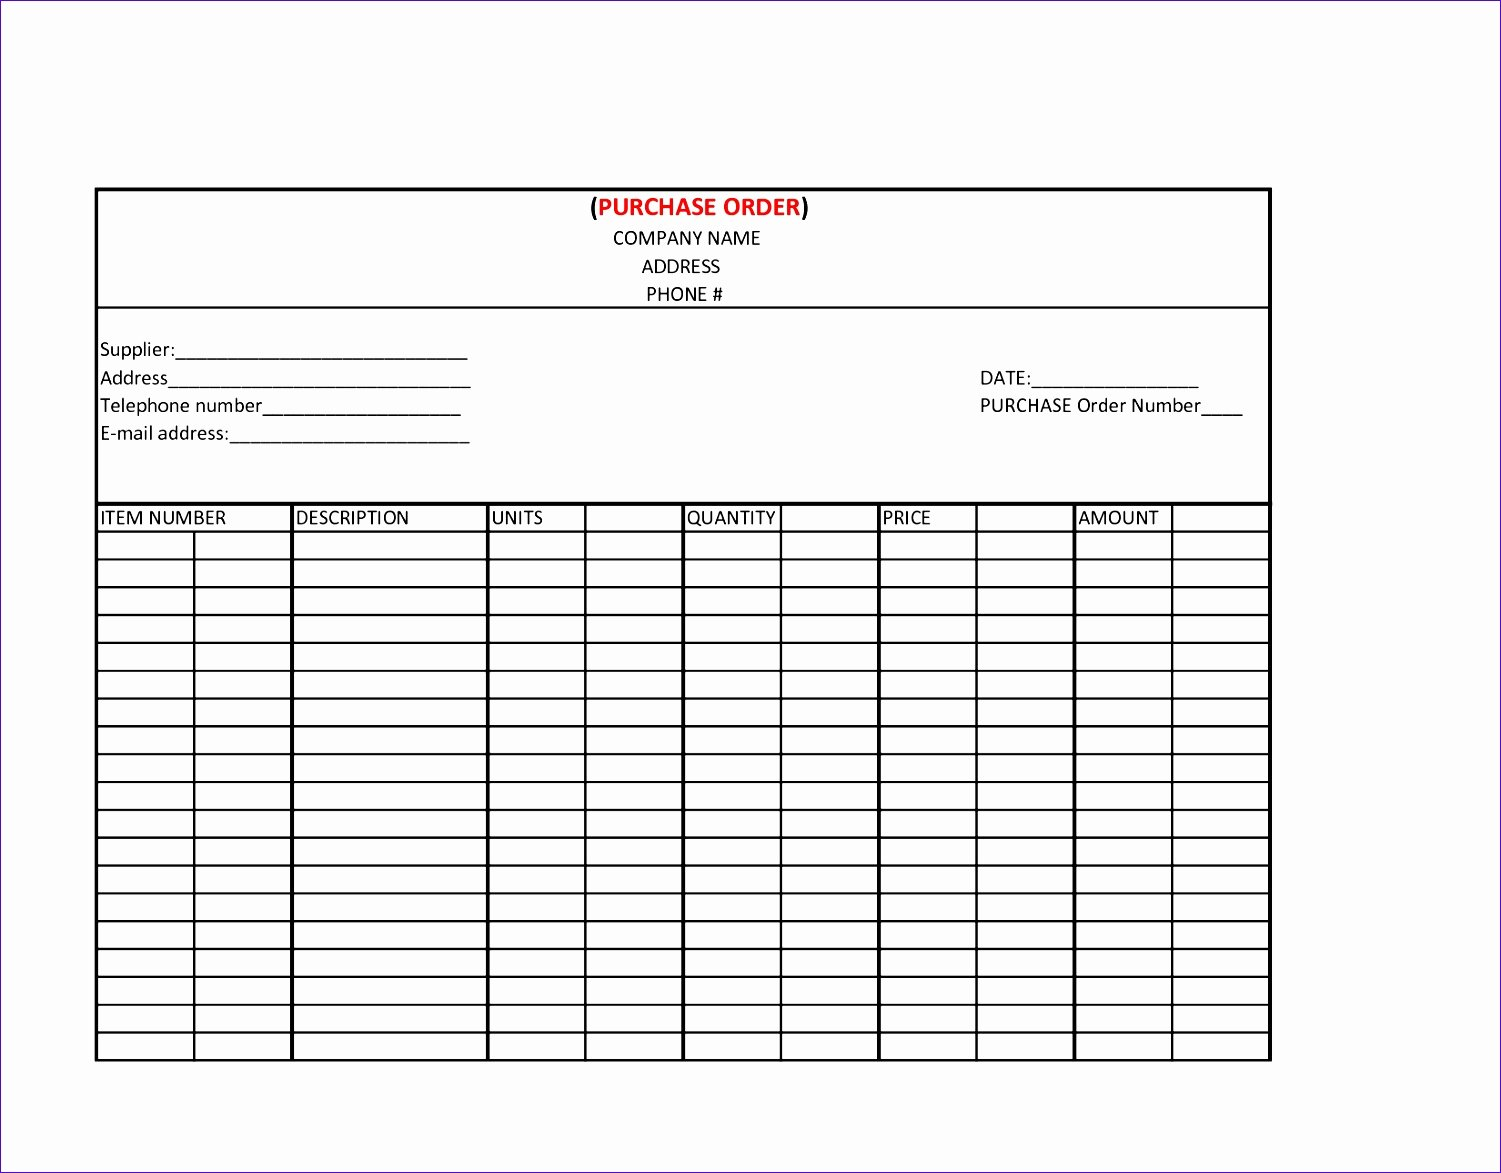 Work order Template Excel Unique 14 Purchase order Excel Template Exceltemplates